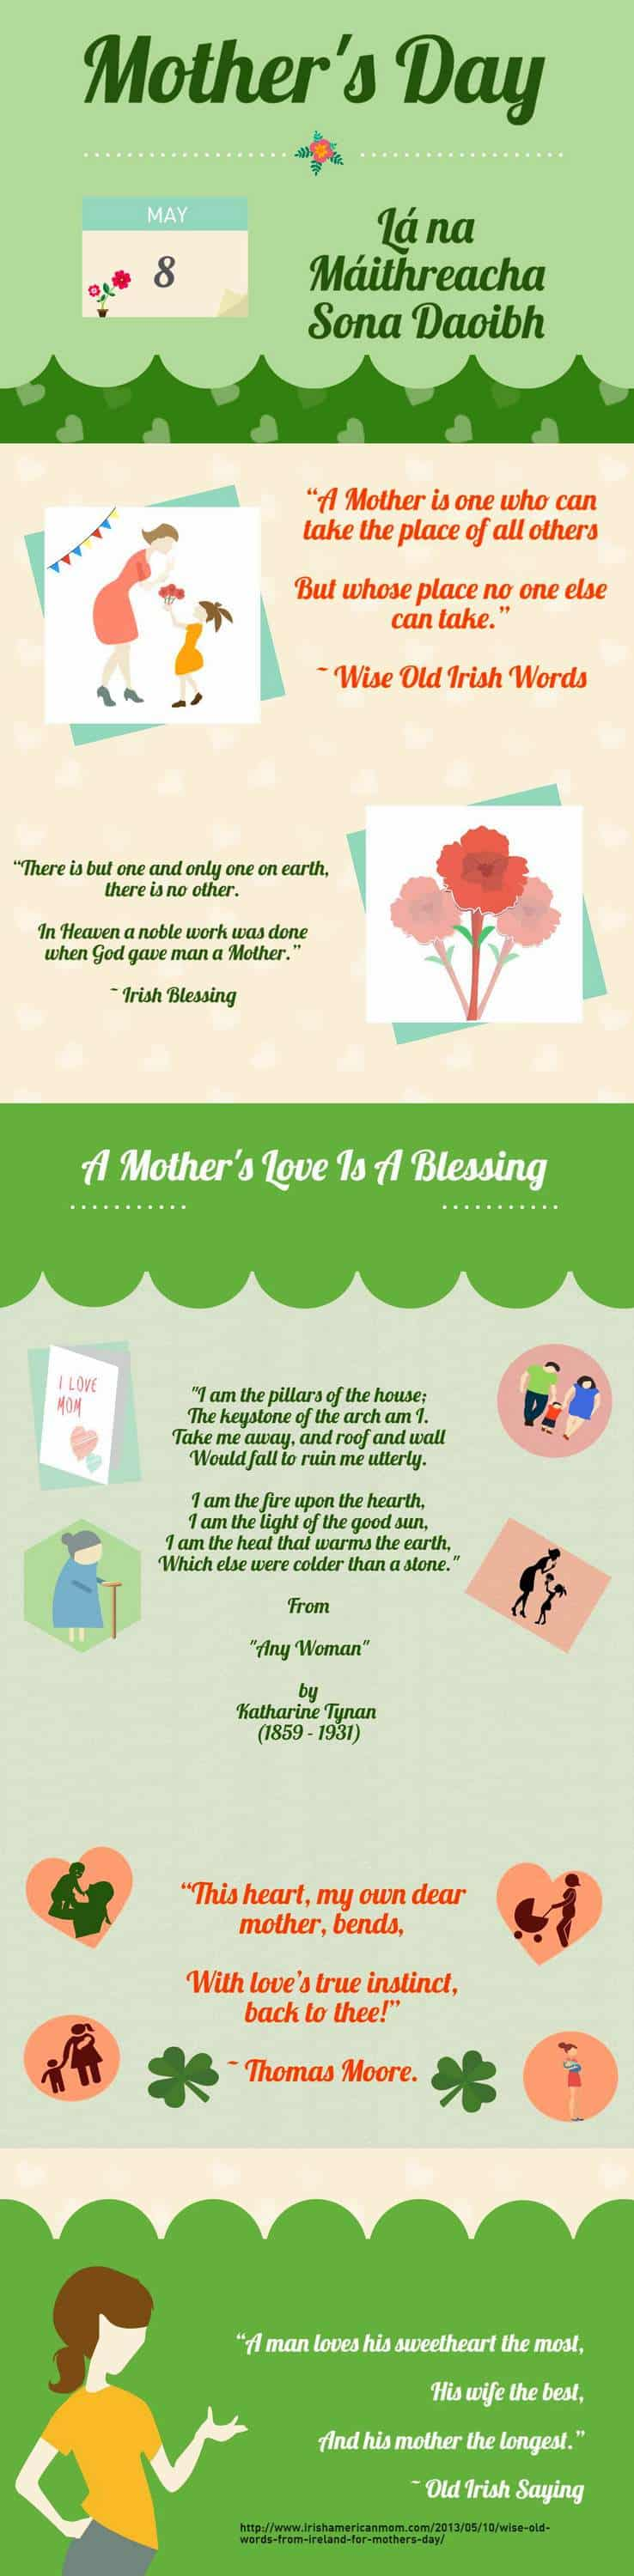 Mother's Day Greetings from Ireland-004